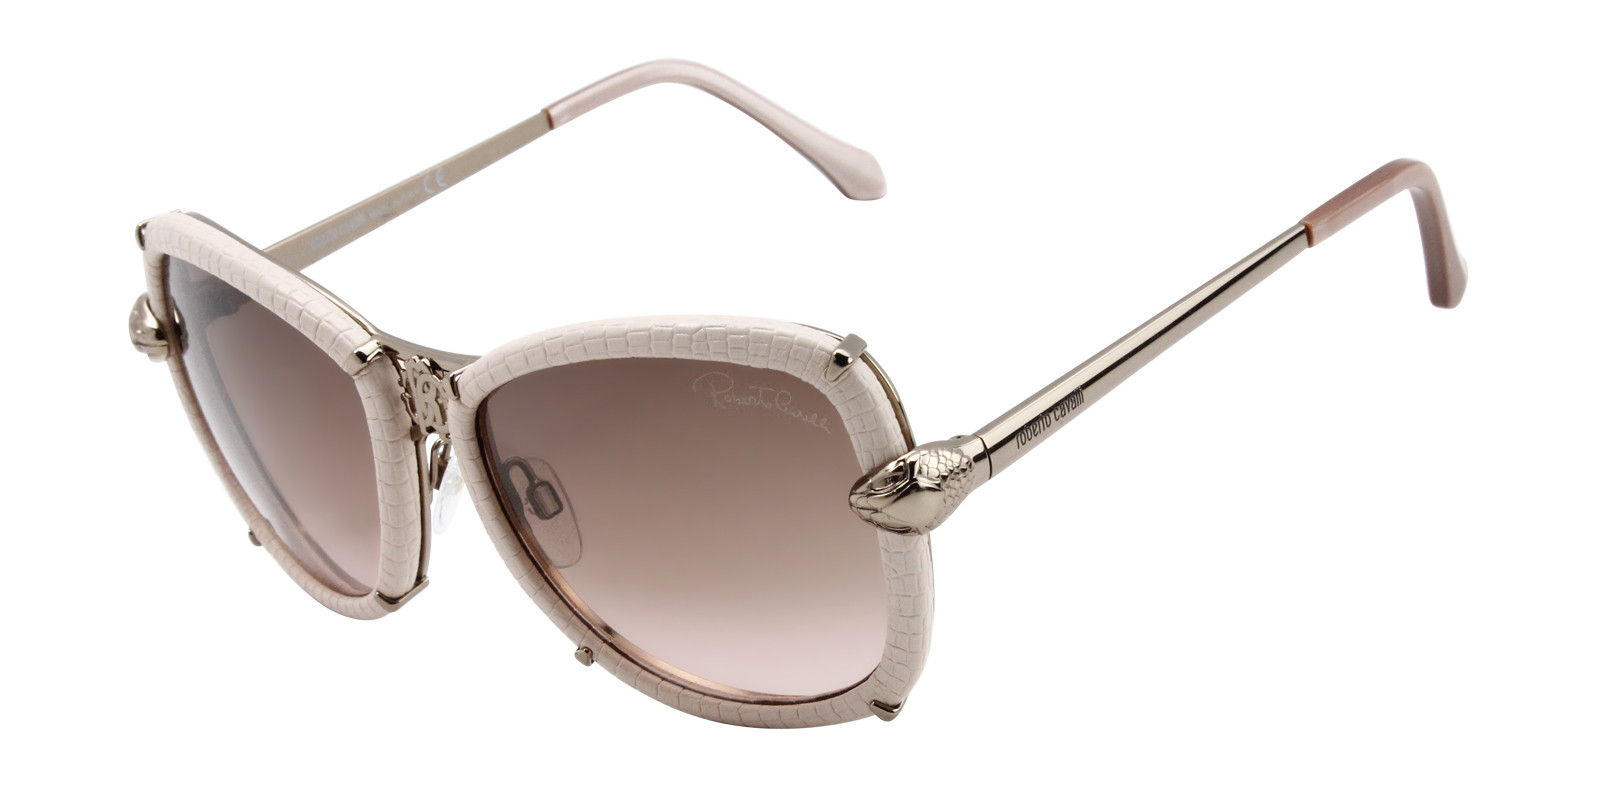 ROBERTO CAVALLI WOMEN'S 915S-A PINK  BROWN LENS SUNGLASSES (front)